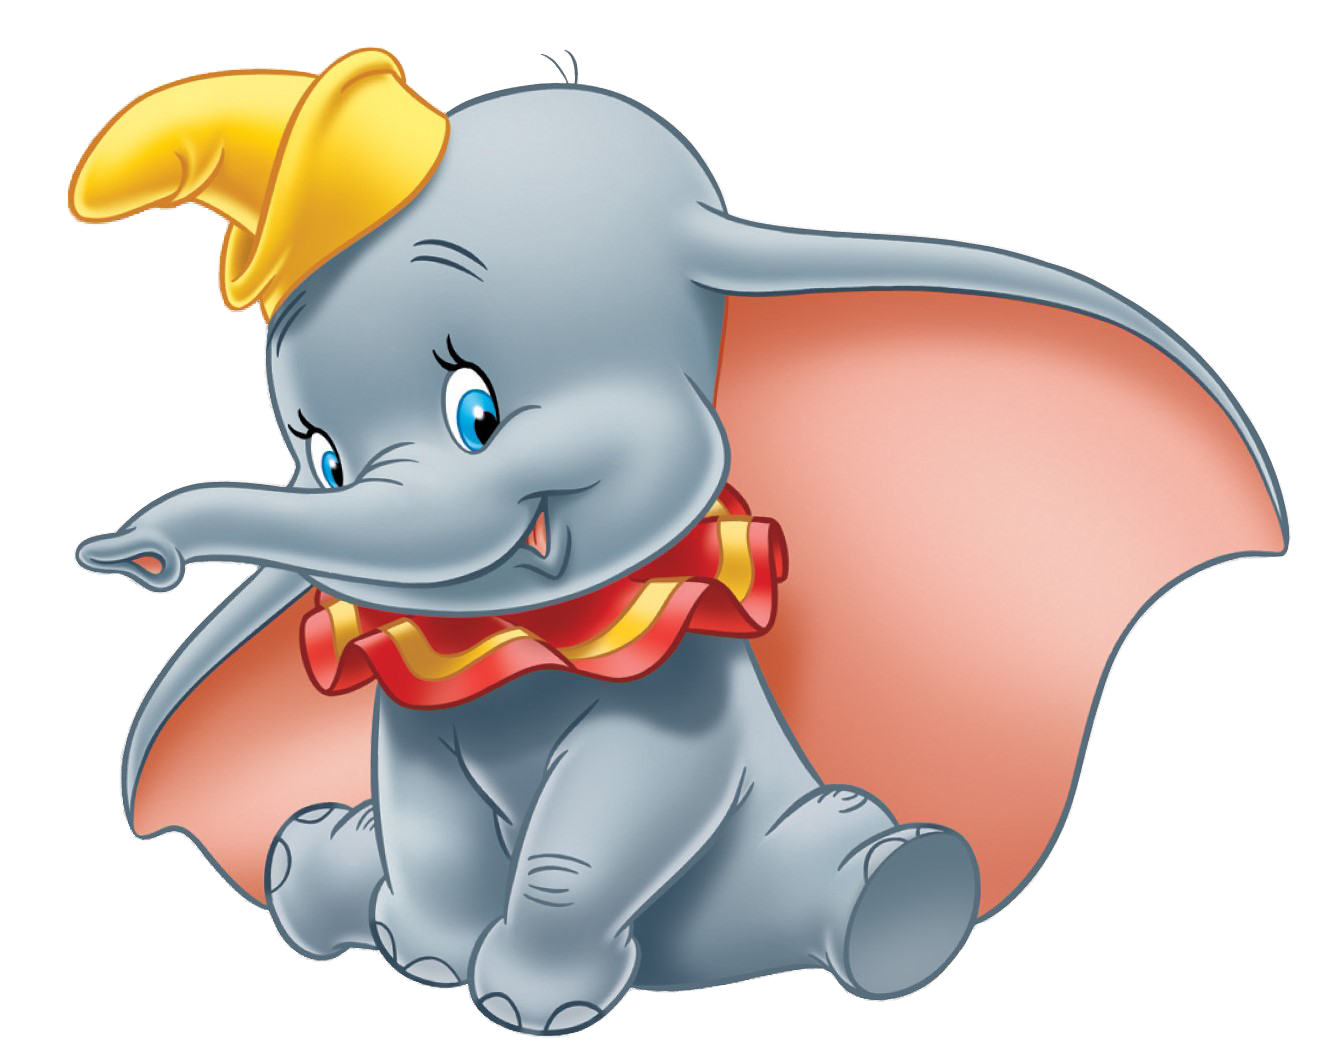 cartoon elephant wallpaper - photo #41